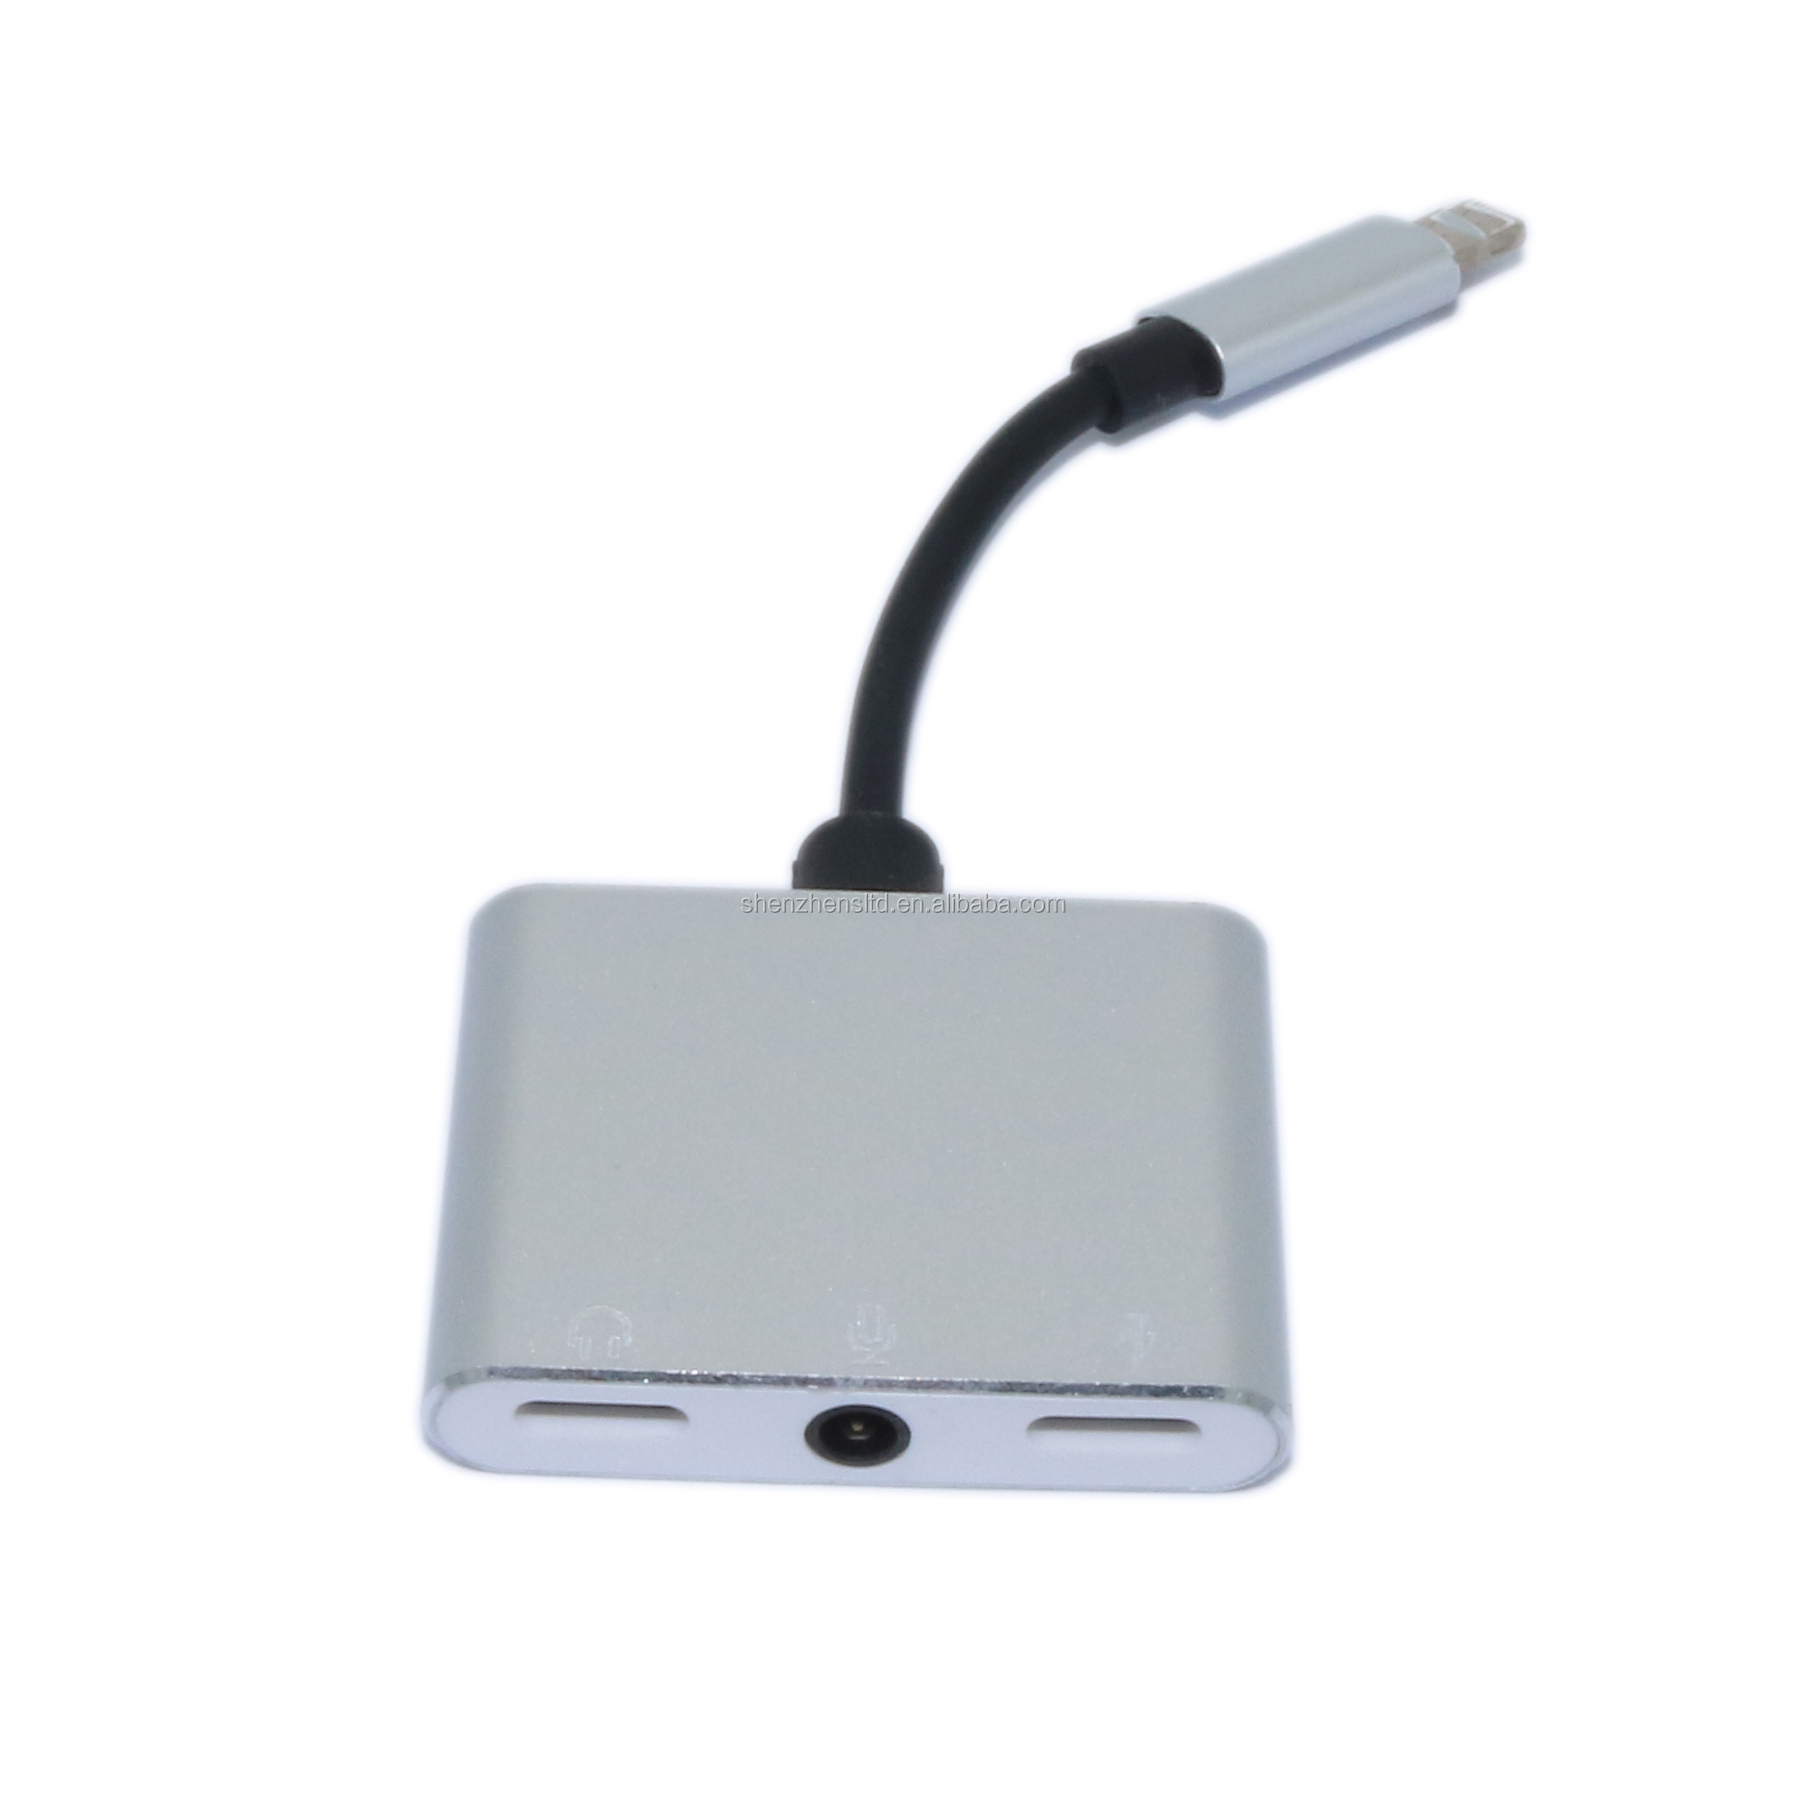 Newest 2 in 1 to 3.5mm micro usb Audio Adapter and Charge Splitter for iPhone with 3.5mm DC call function